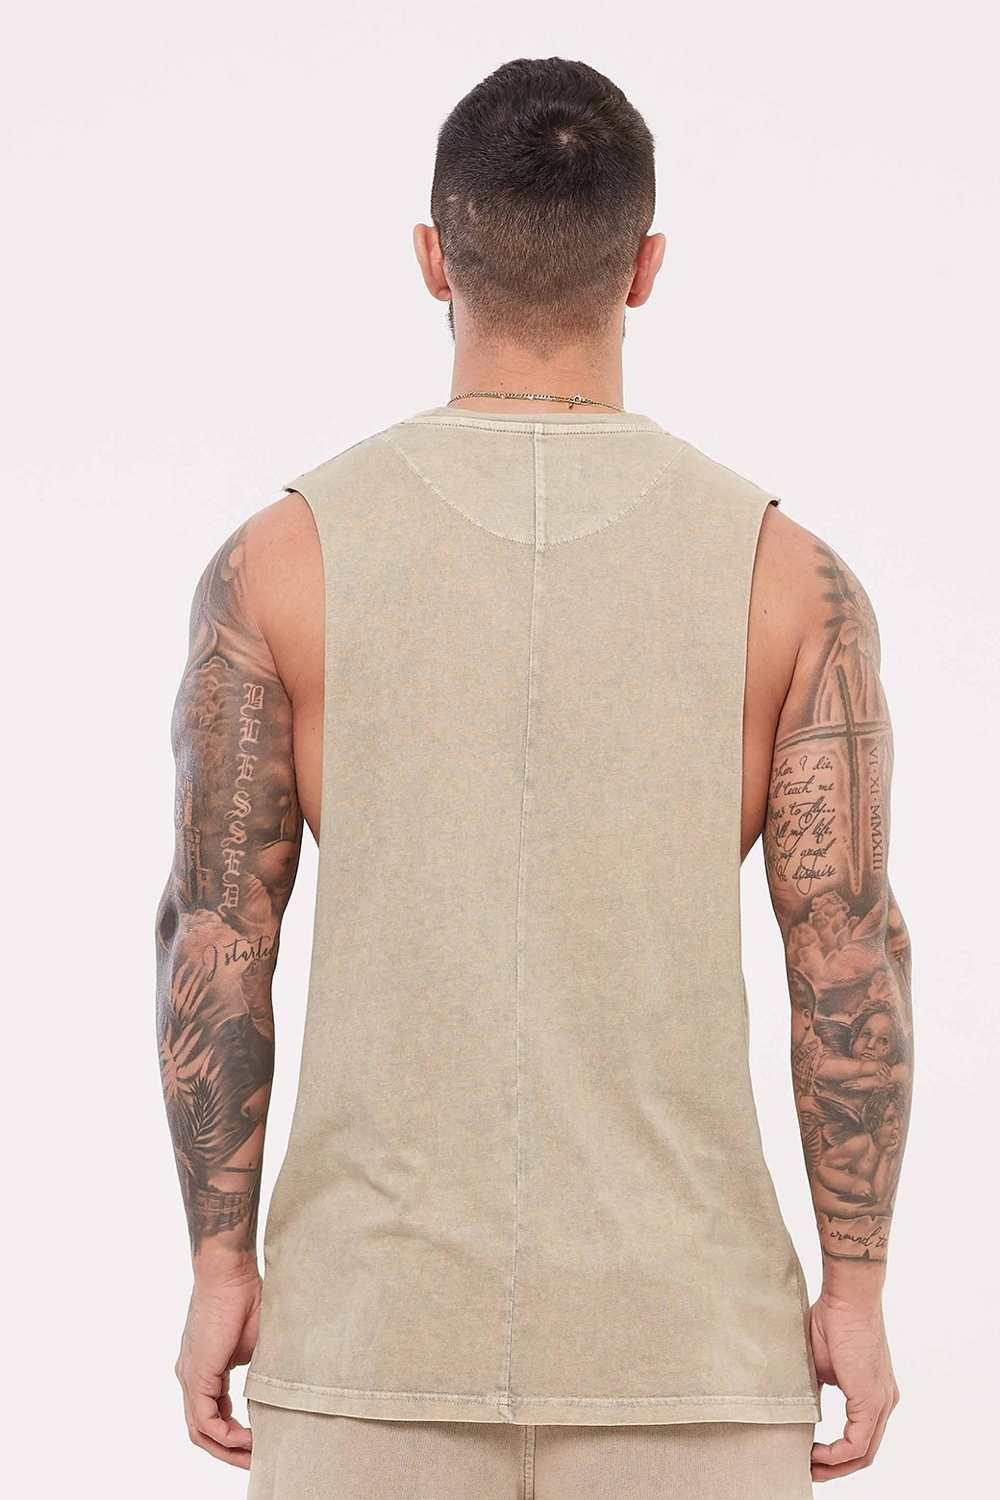 Good For Nothing Signature Vest - Stone Wash - 3